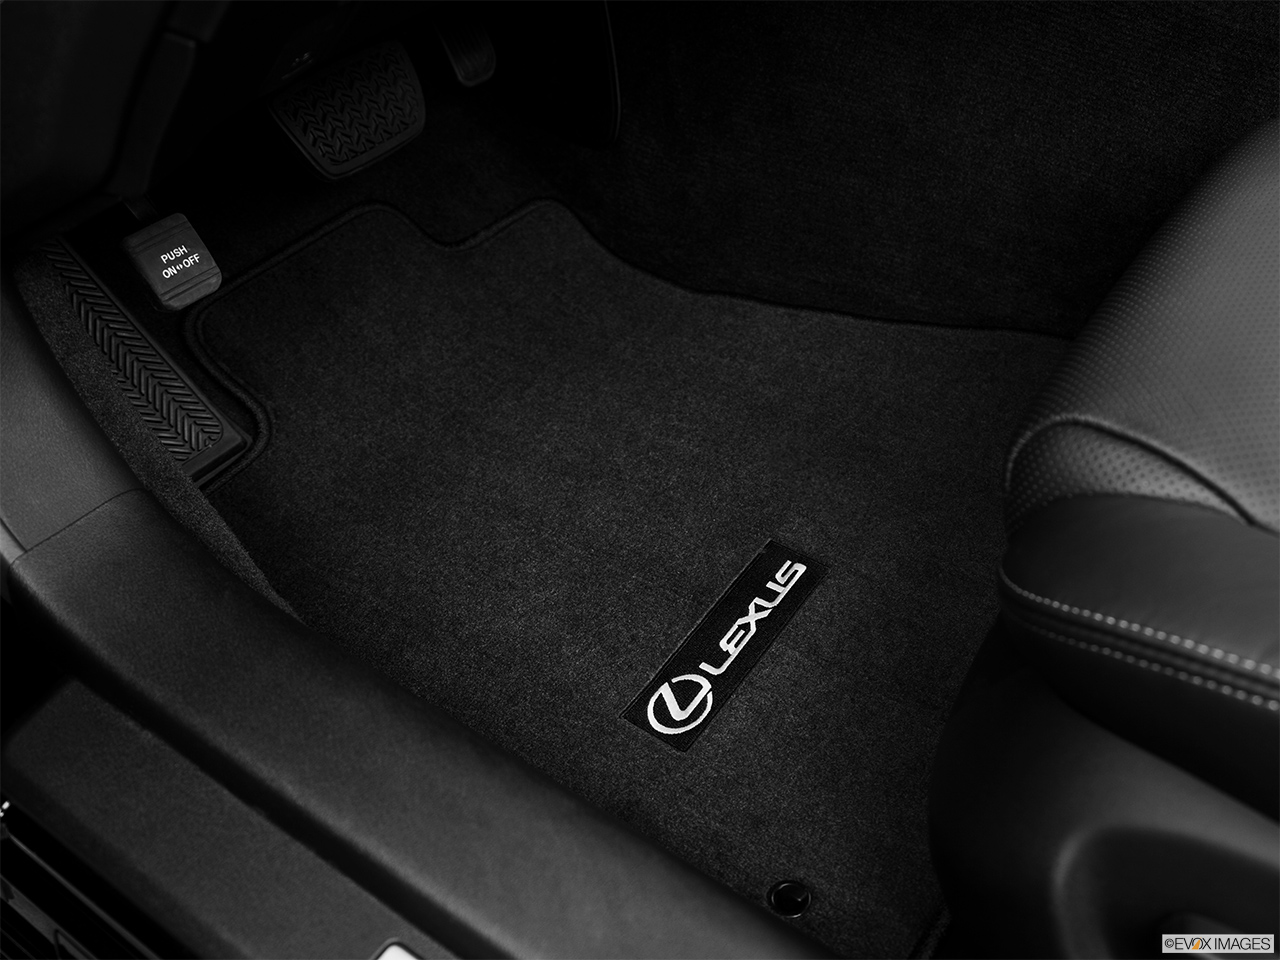 2013 Lexus IS 250C IS 250 C RWD Driver's floor mat and pedals. Mid-seat level from outside looking in.